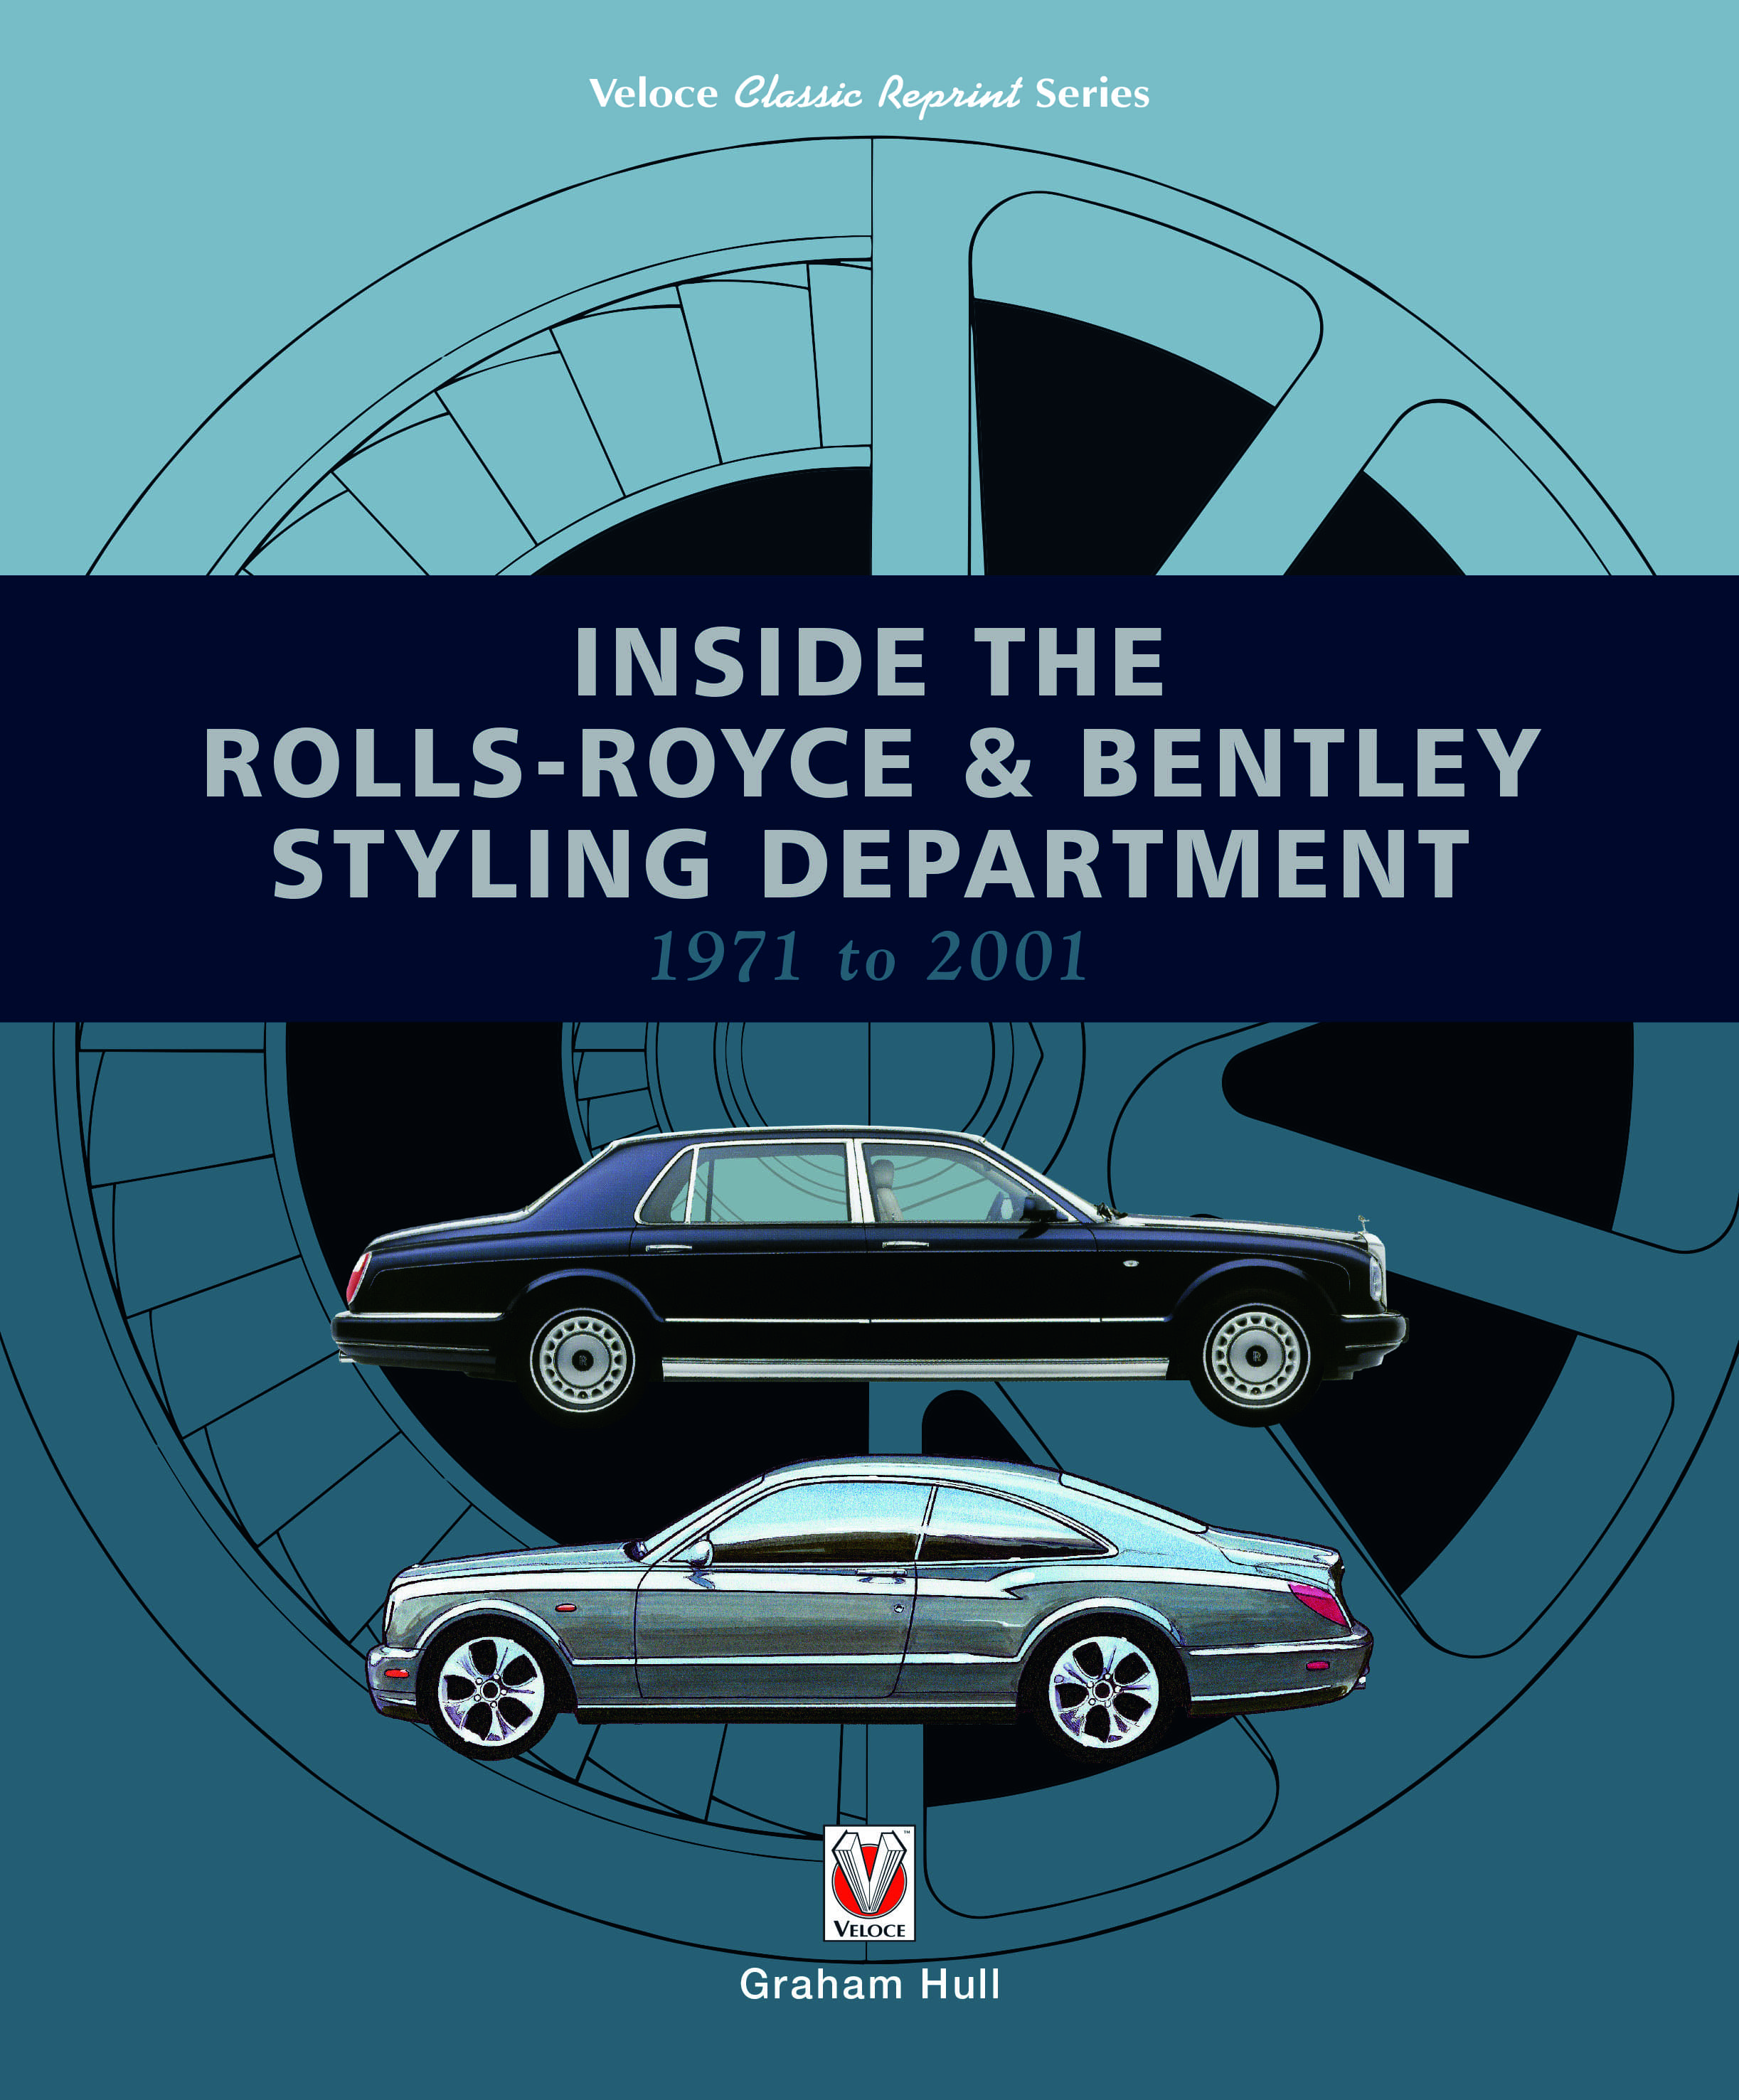 Inside the Rolls-Royce & Bentley Styling Department cover